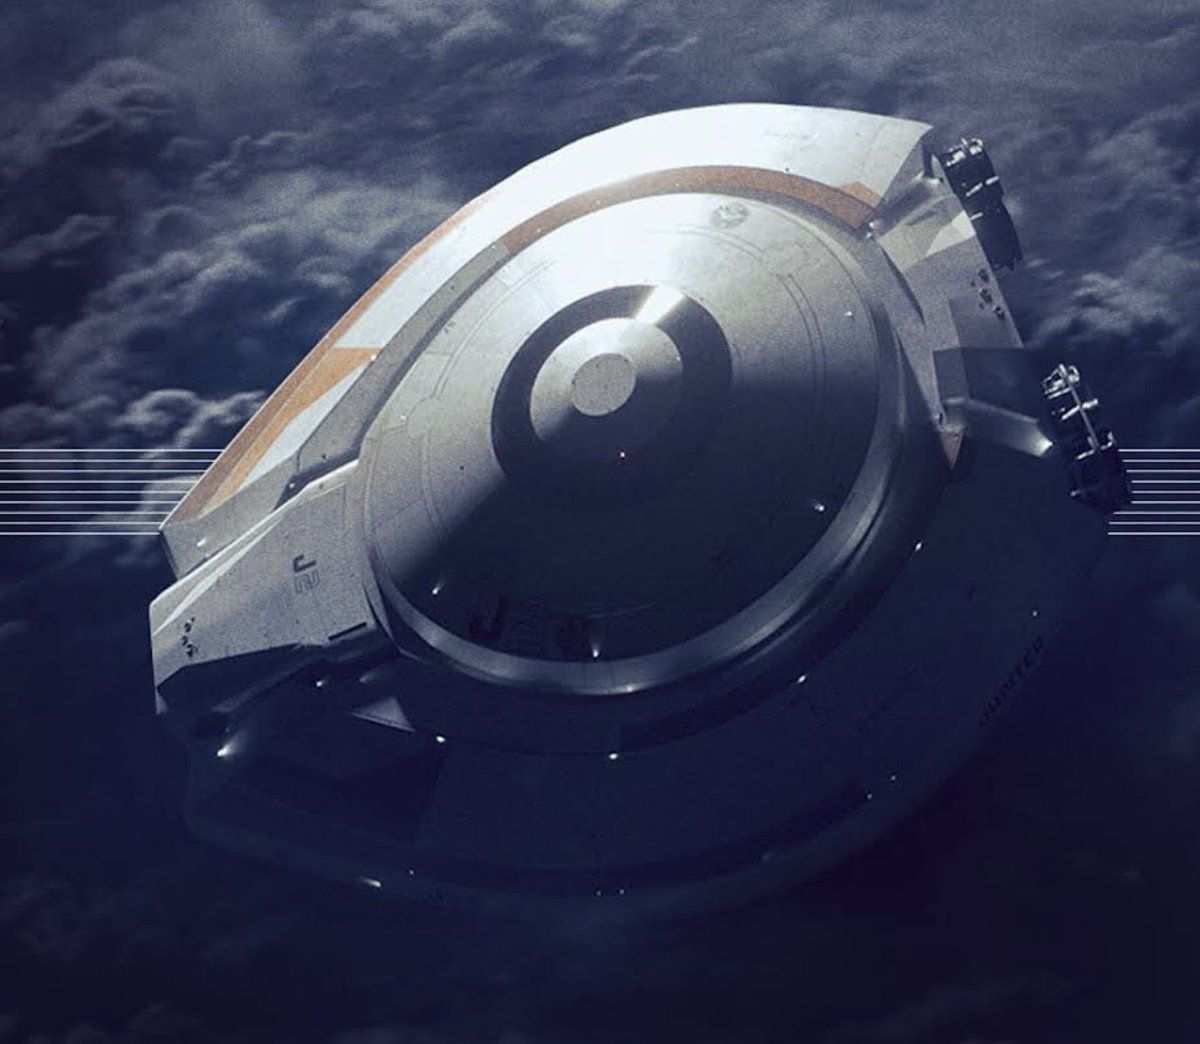 Pin by Brian Schroeder on Sci Fi in 2019 | Lost in space